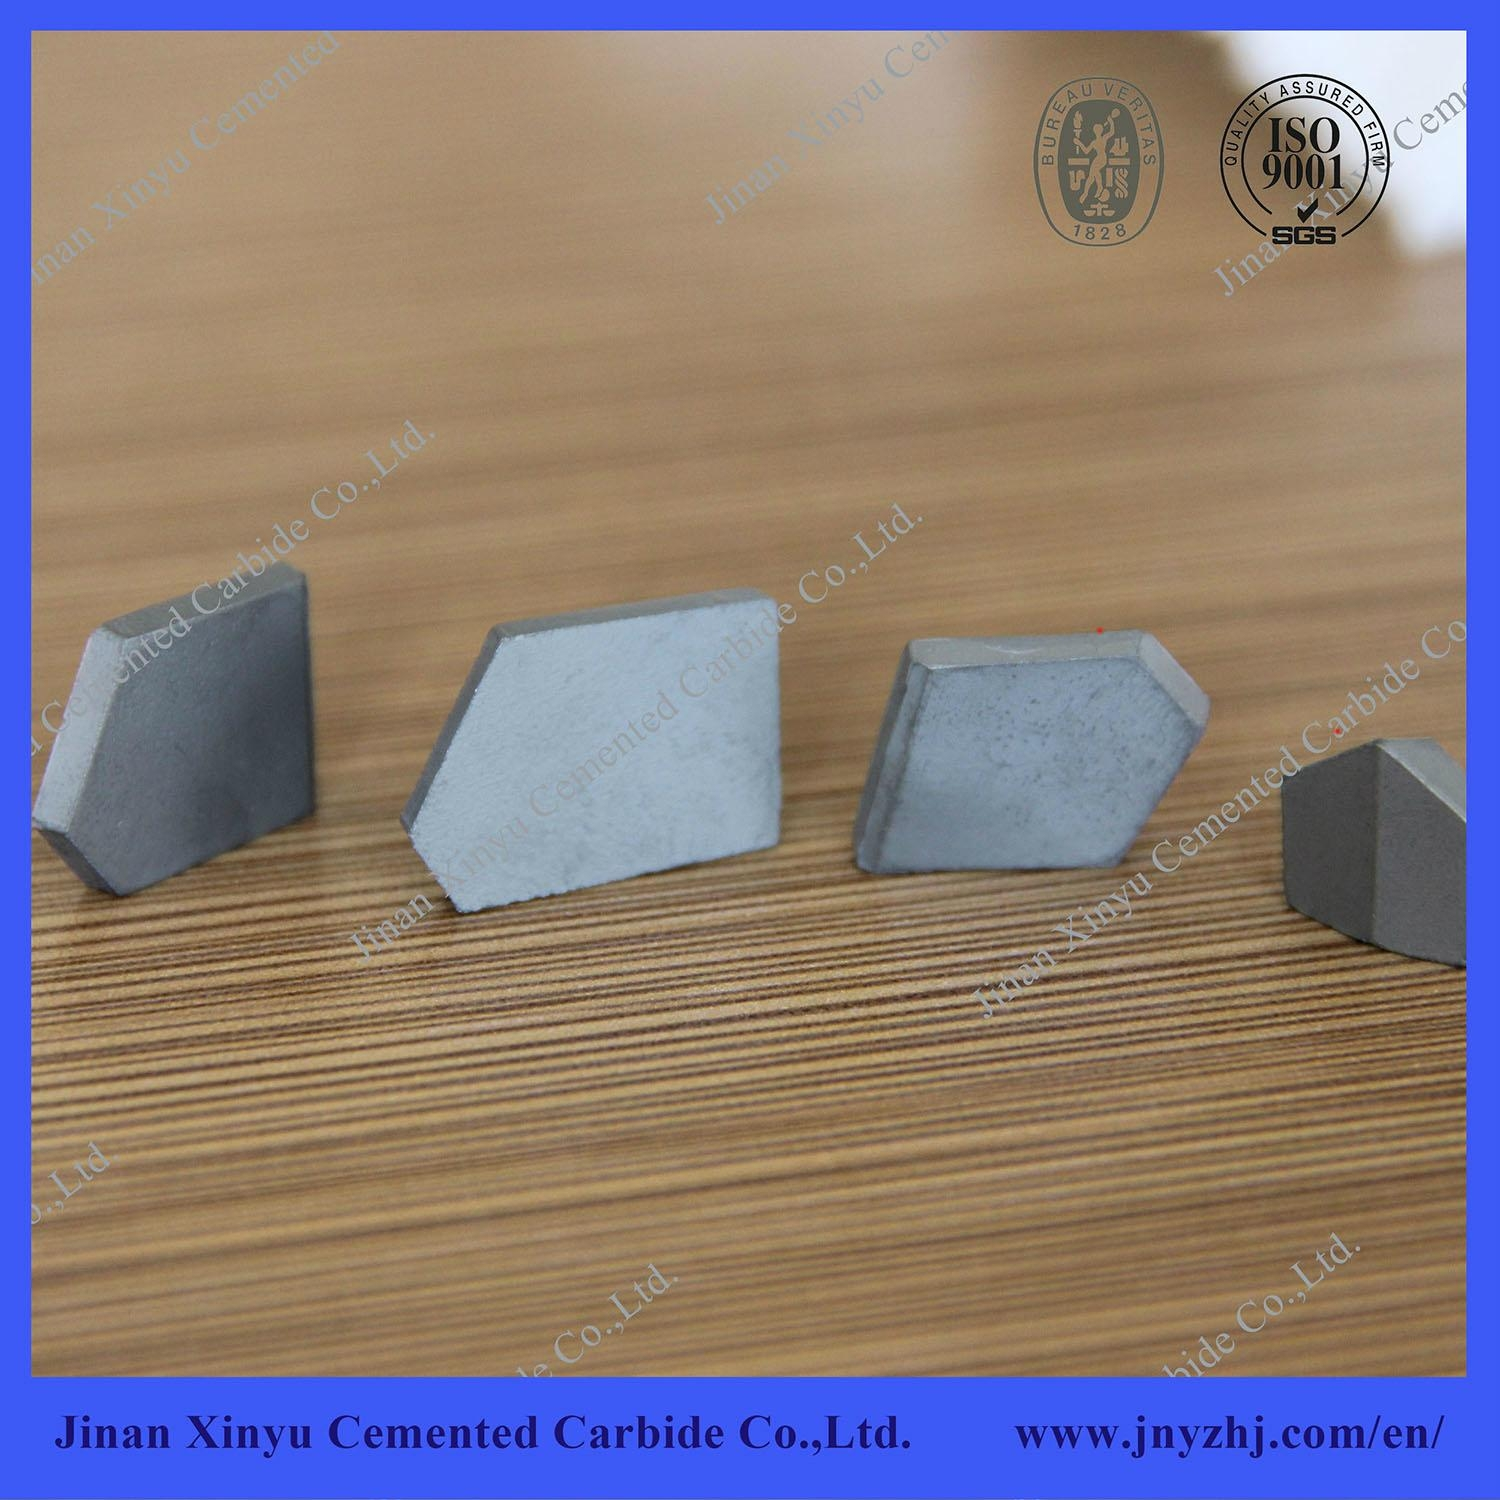 Cemented Carbide Coal Mining Bits 3